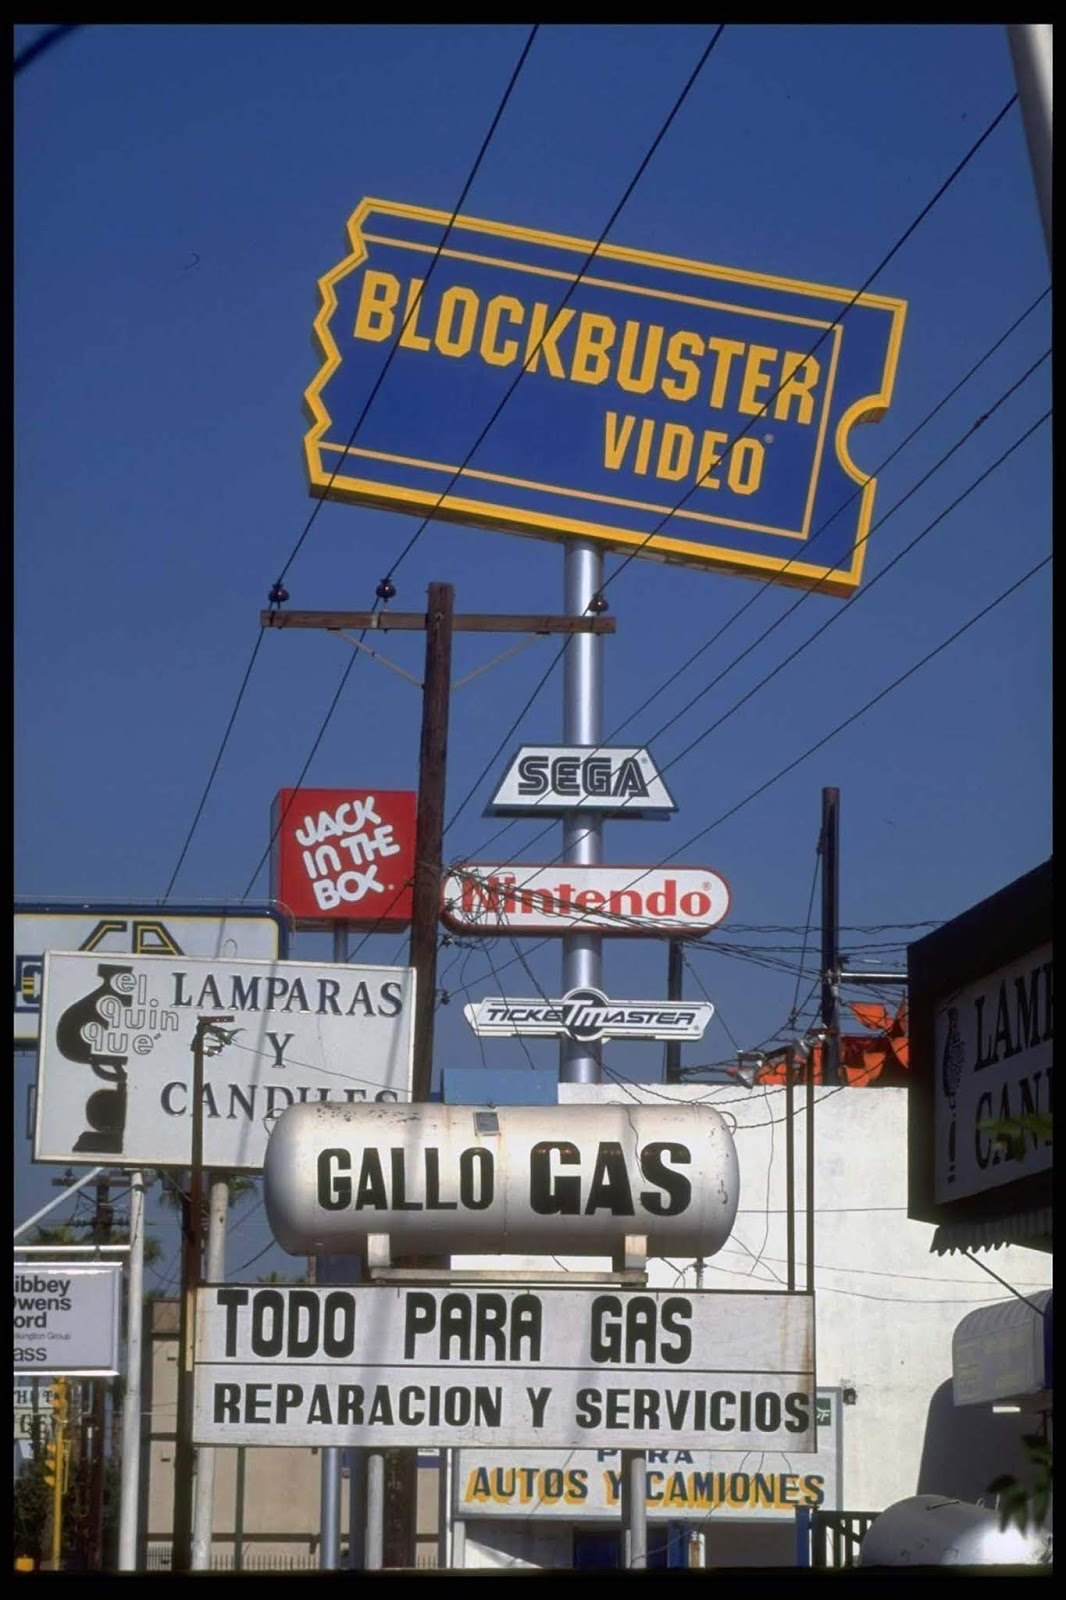 Blockbuster Video store & Jack In The Box fast food eatery among Amer. & Mexican services & products advertised on street signs in border town.